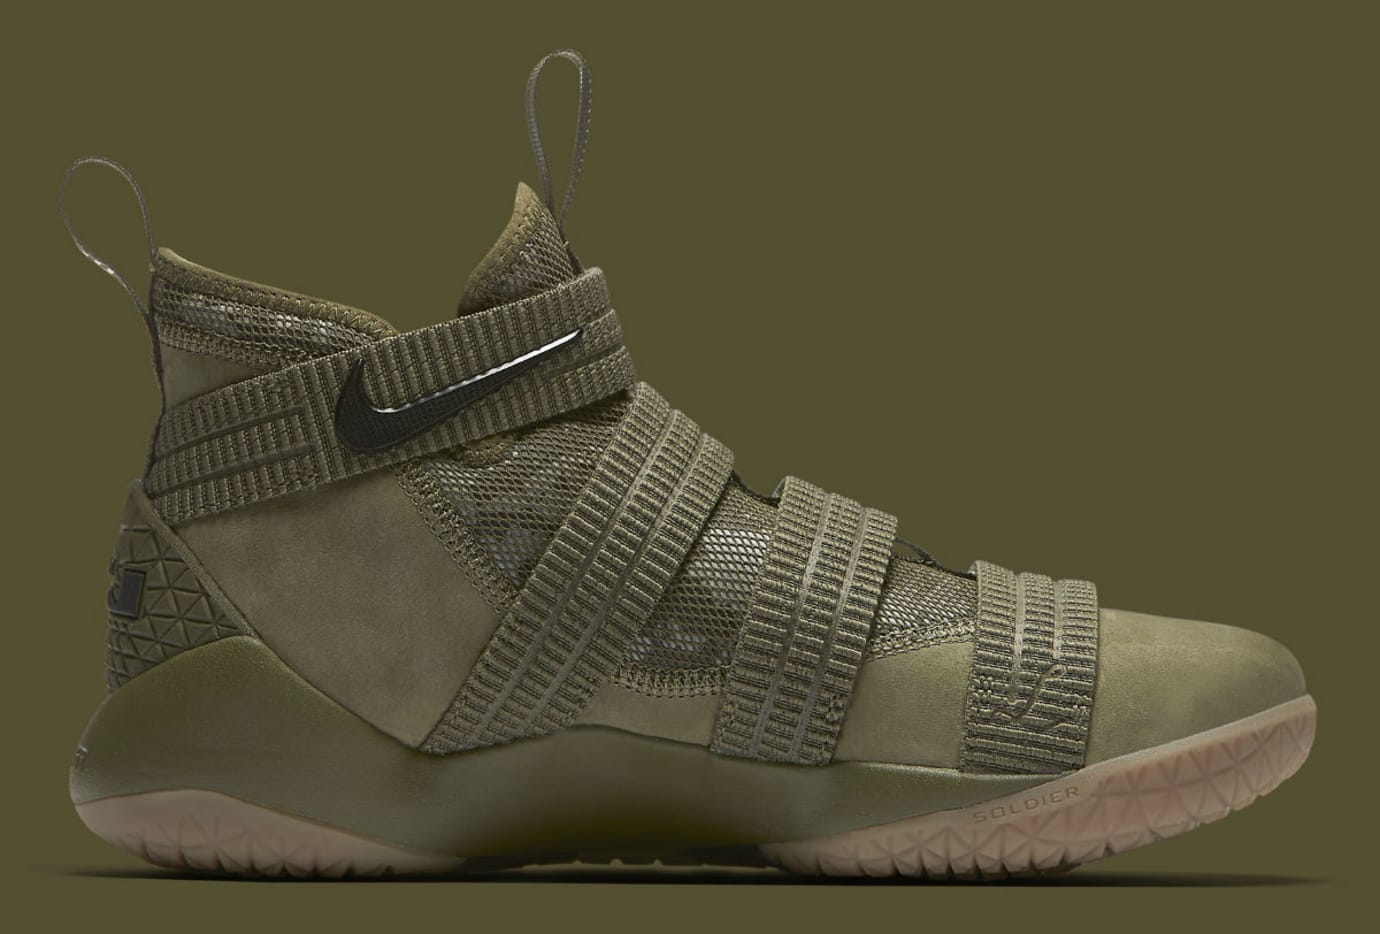 1564f7240c0 Nike LeBron Soldier 11 SFG Olive Release Date Medial 897646-200